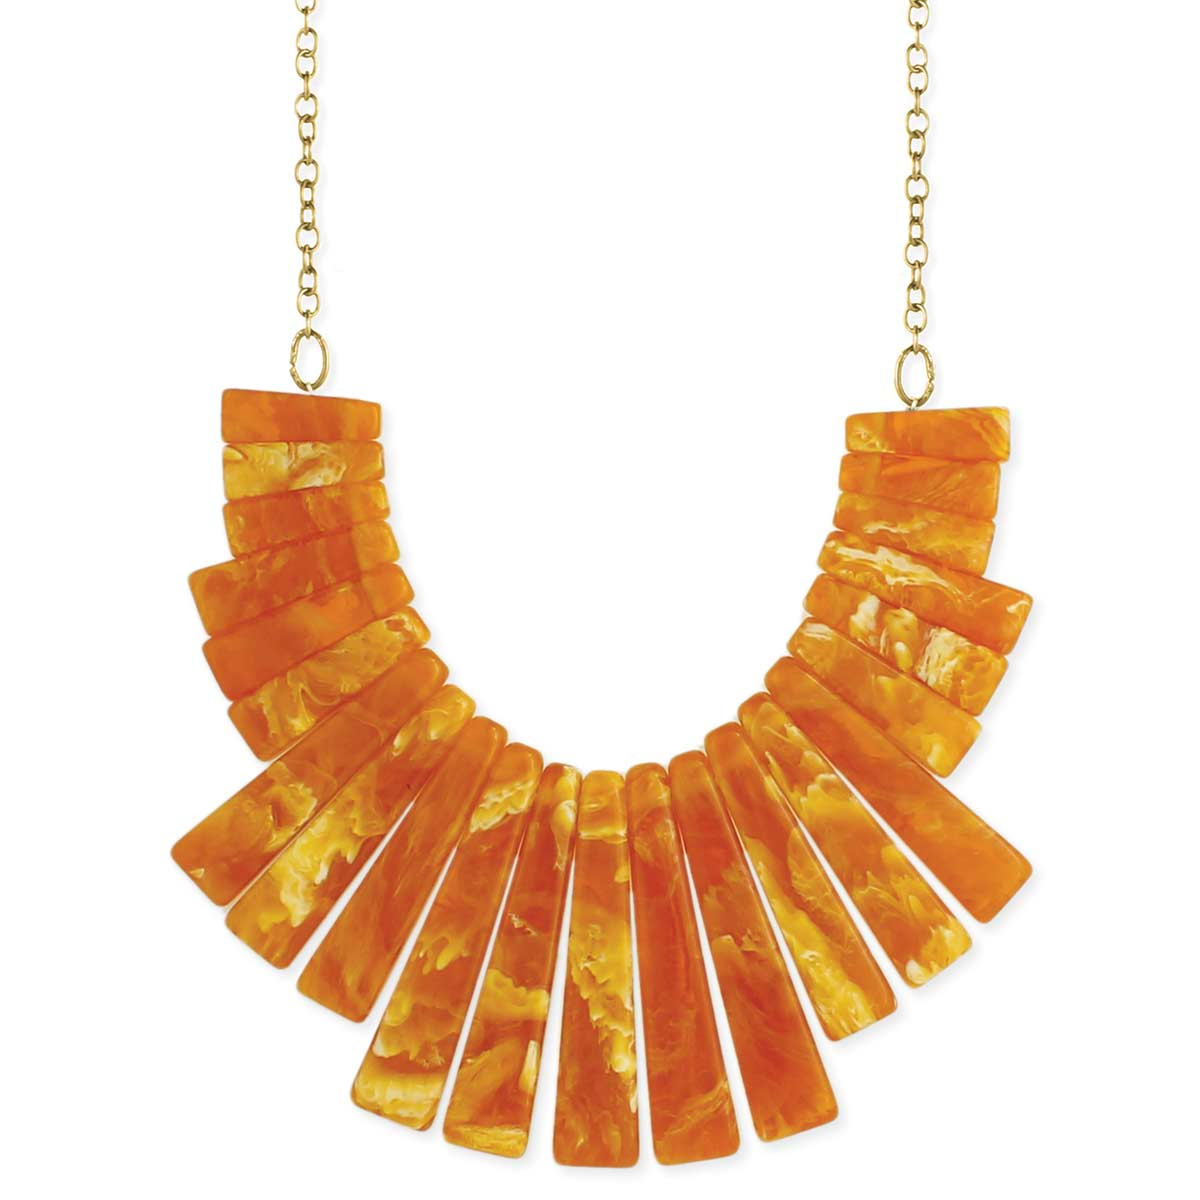 Marble Amber Bars Bib Necklace